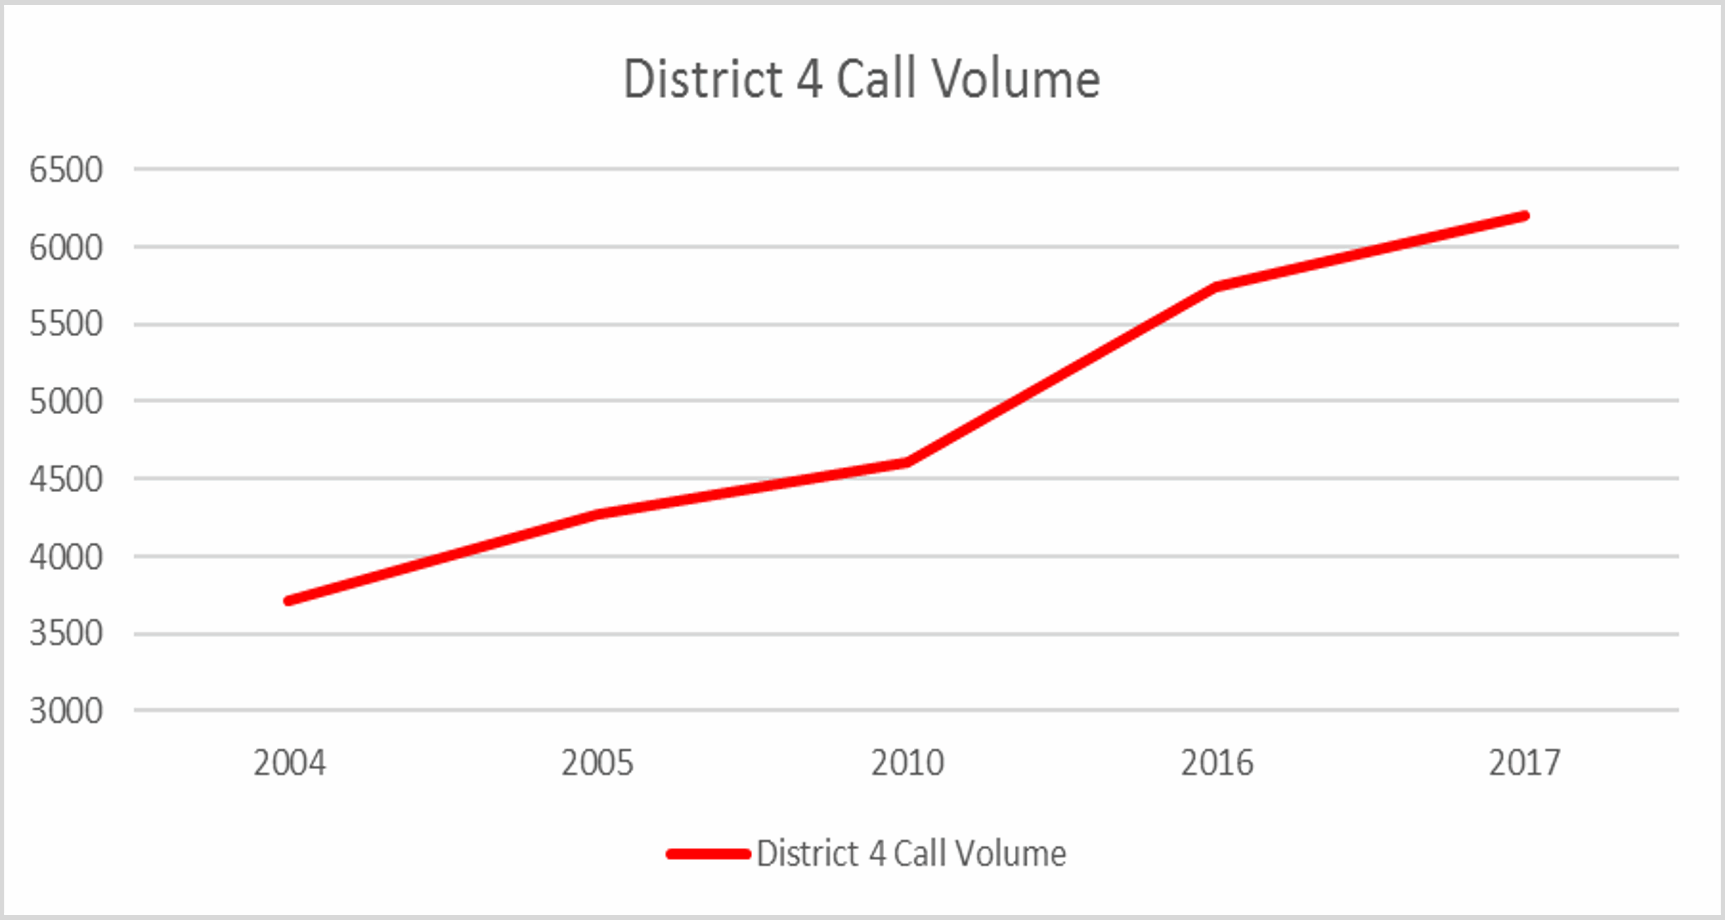 District 4 Call Volume